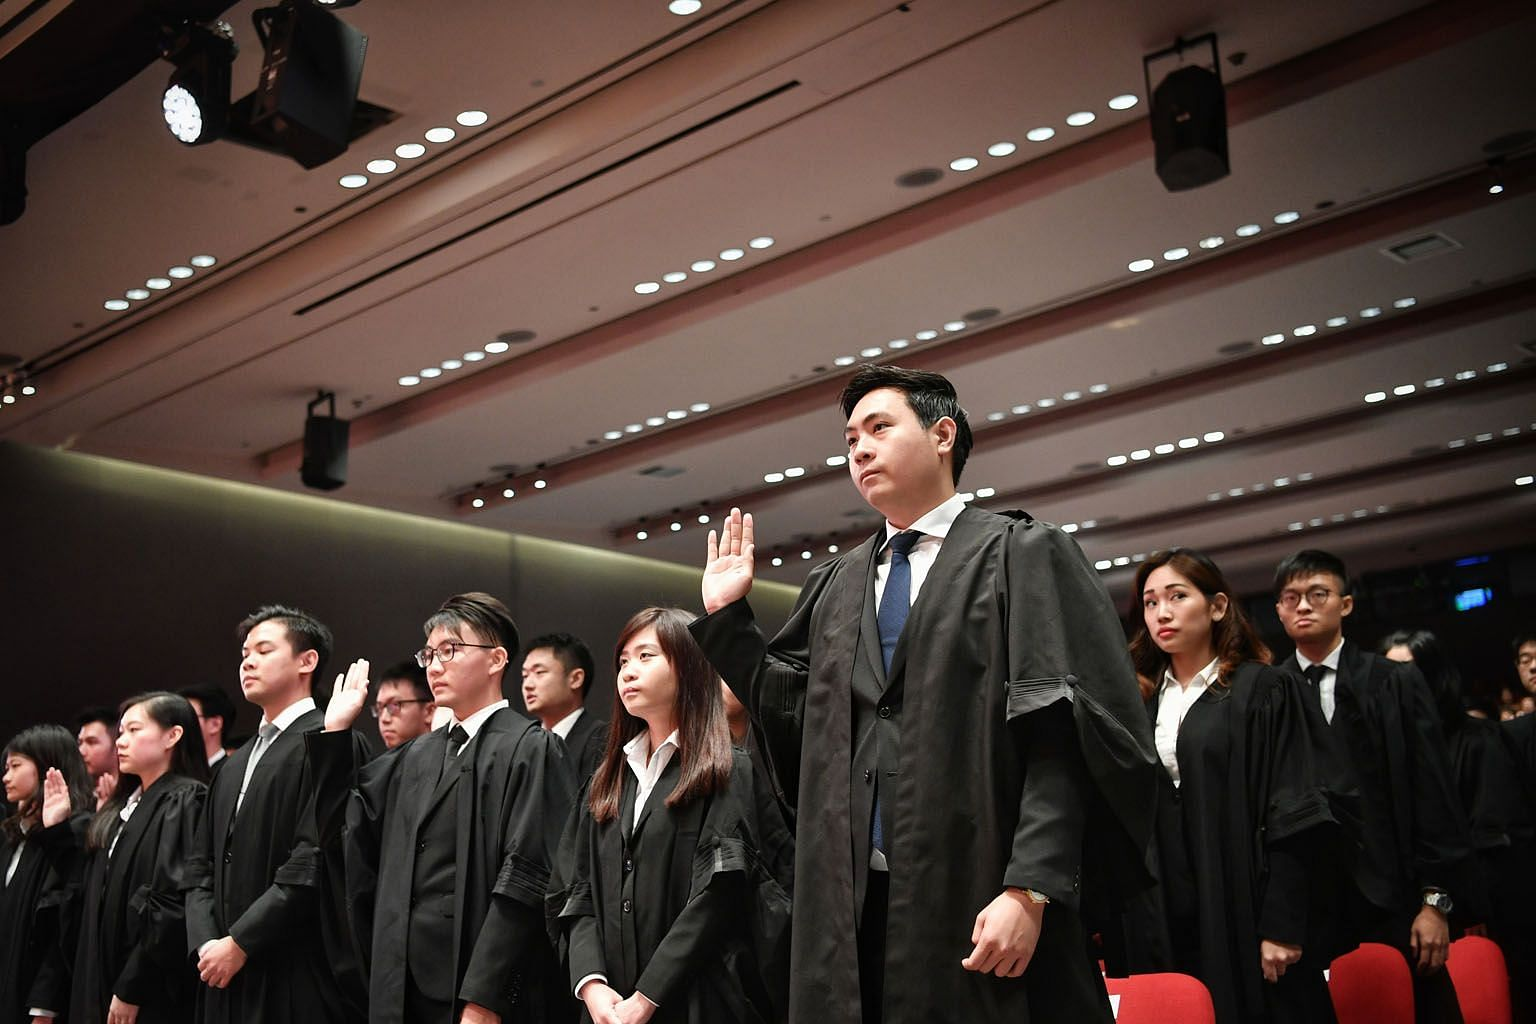 A total of 529 lawyers are being called to the Bar over three Mass Call sessions at the Supreme Court auditorium yesterday and today.